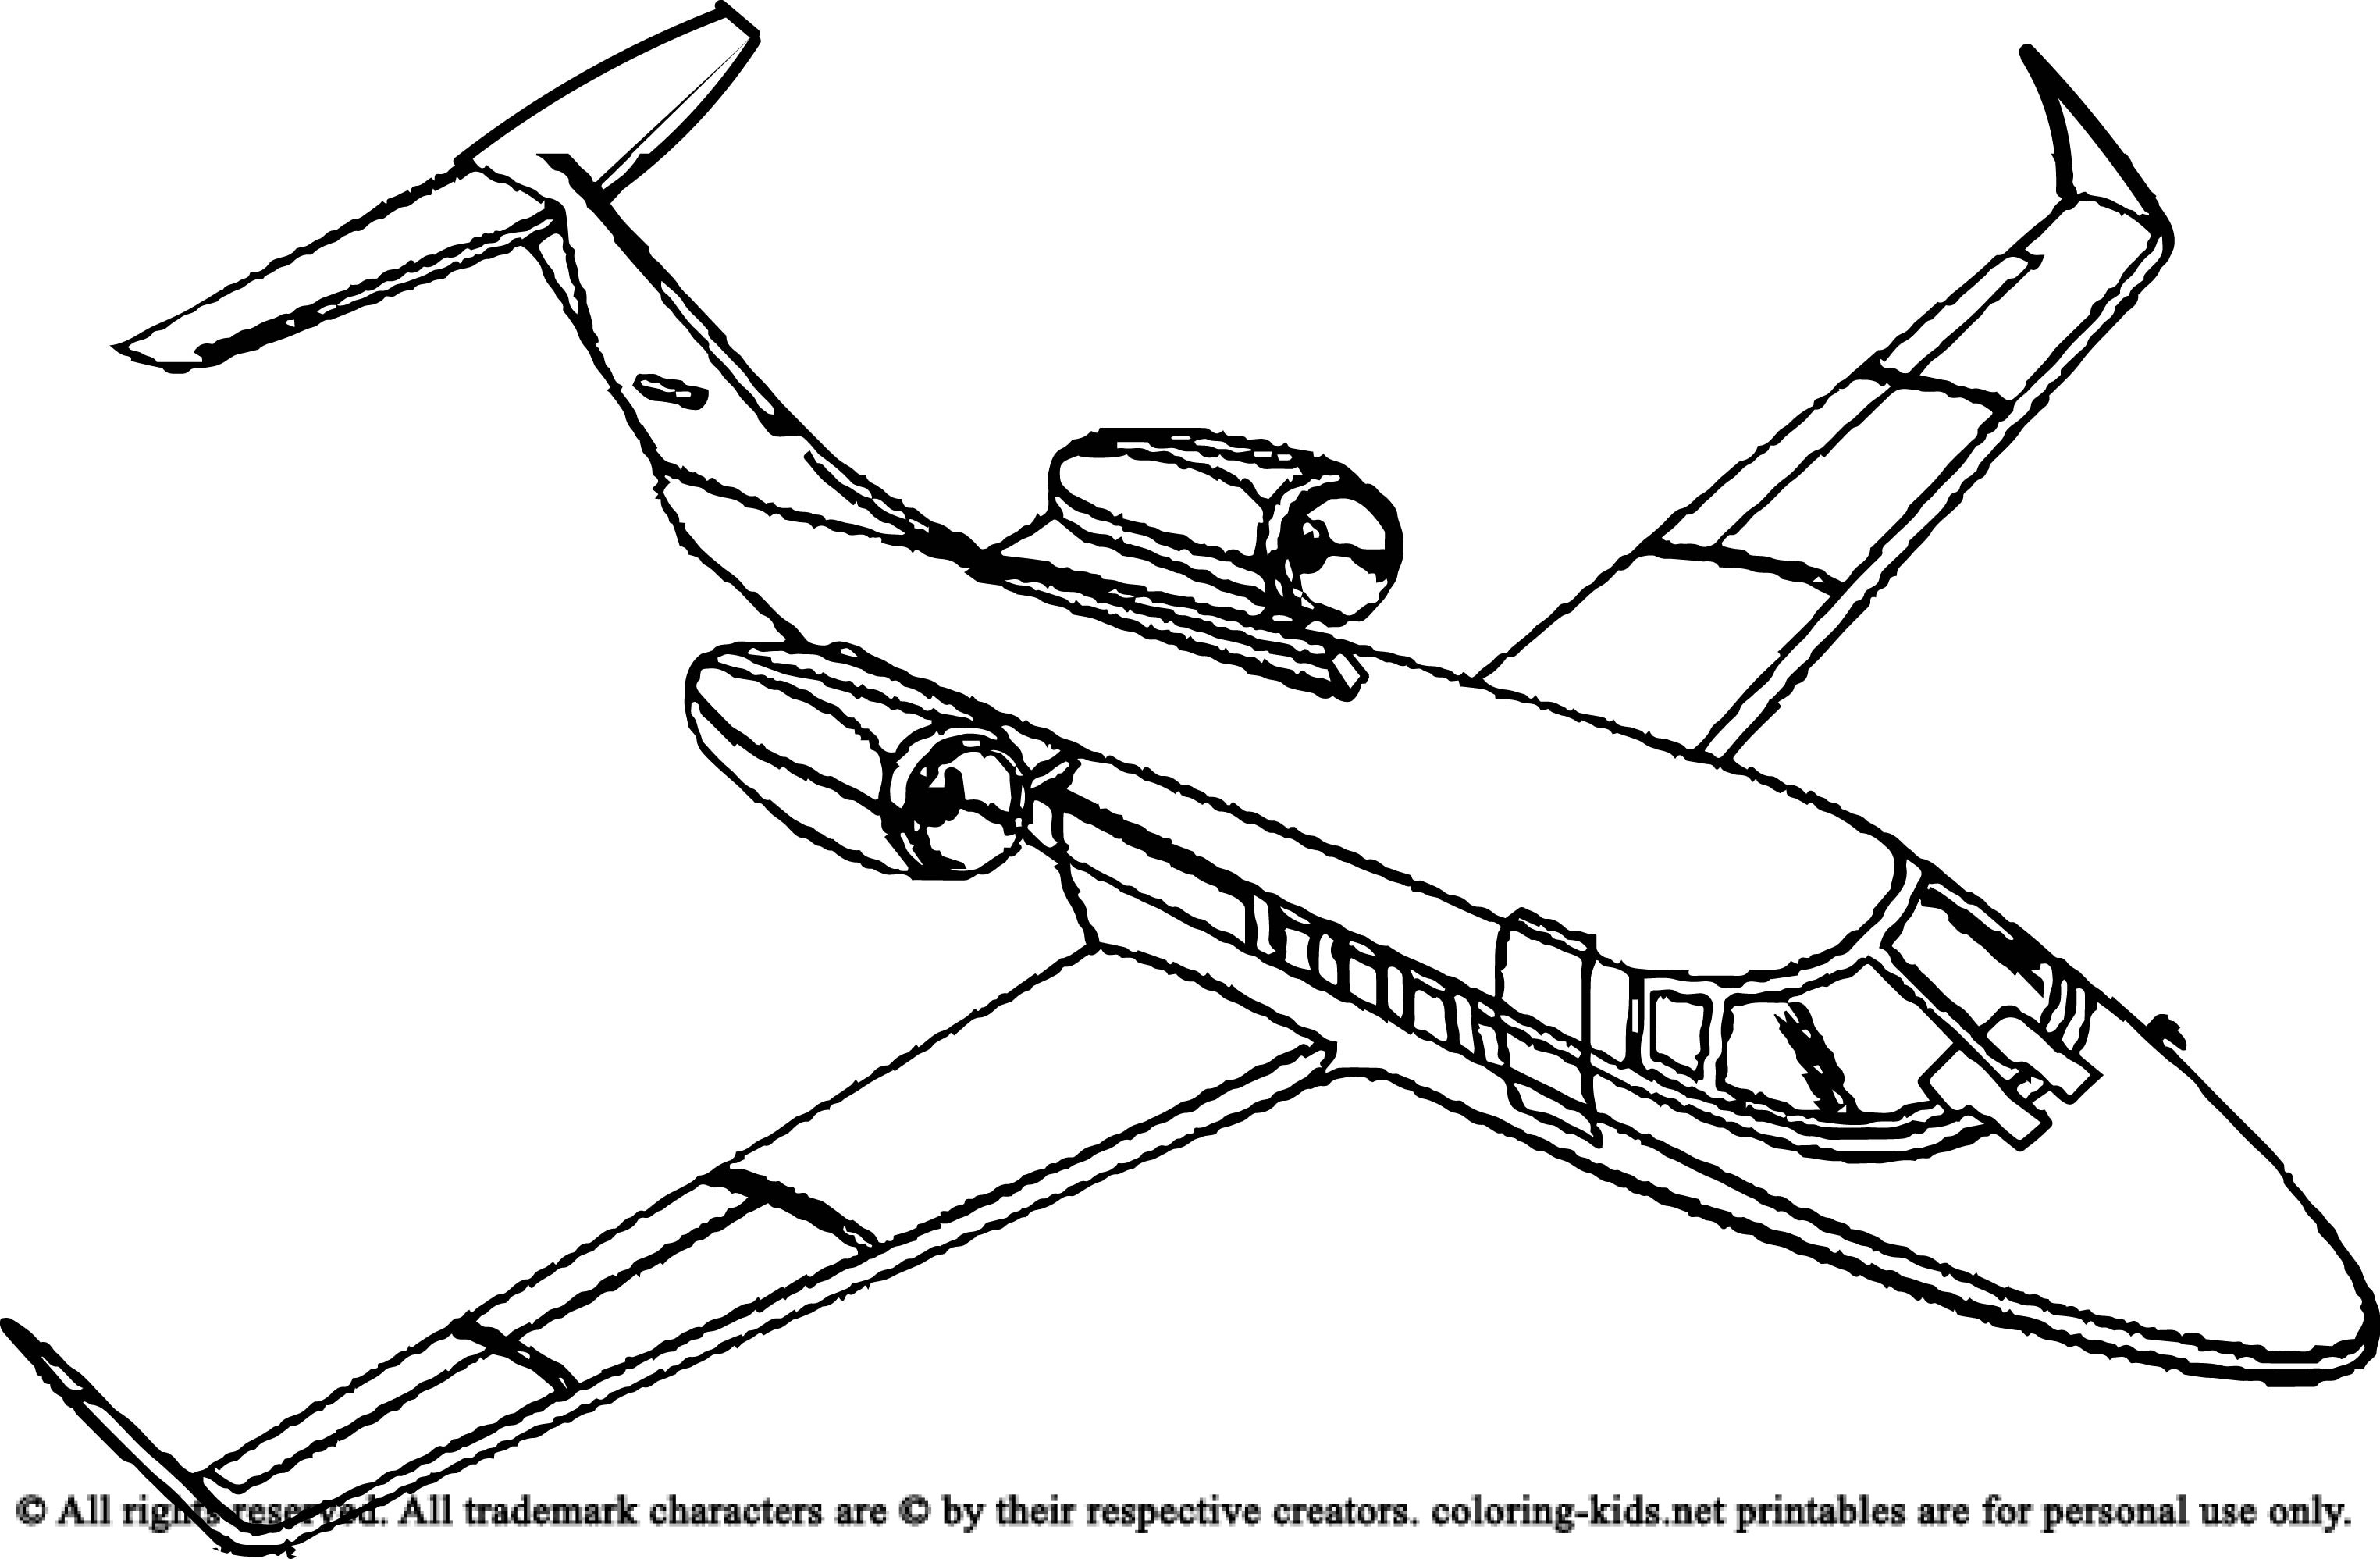 Best ideas about Airplane Coloring Pages For Kids . Save or Pin Top Airplane To Color Colouring Pages Now.